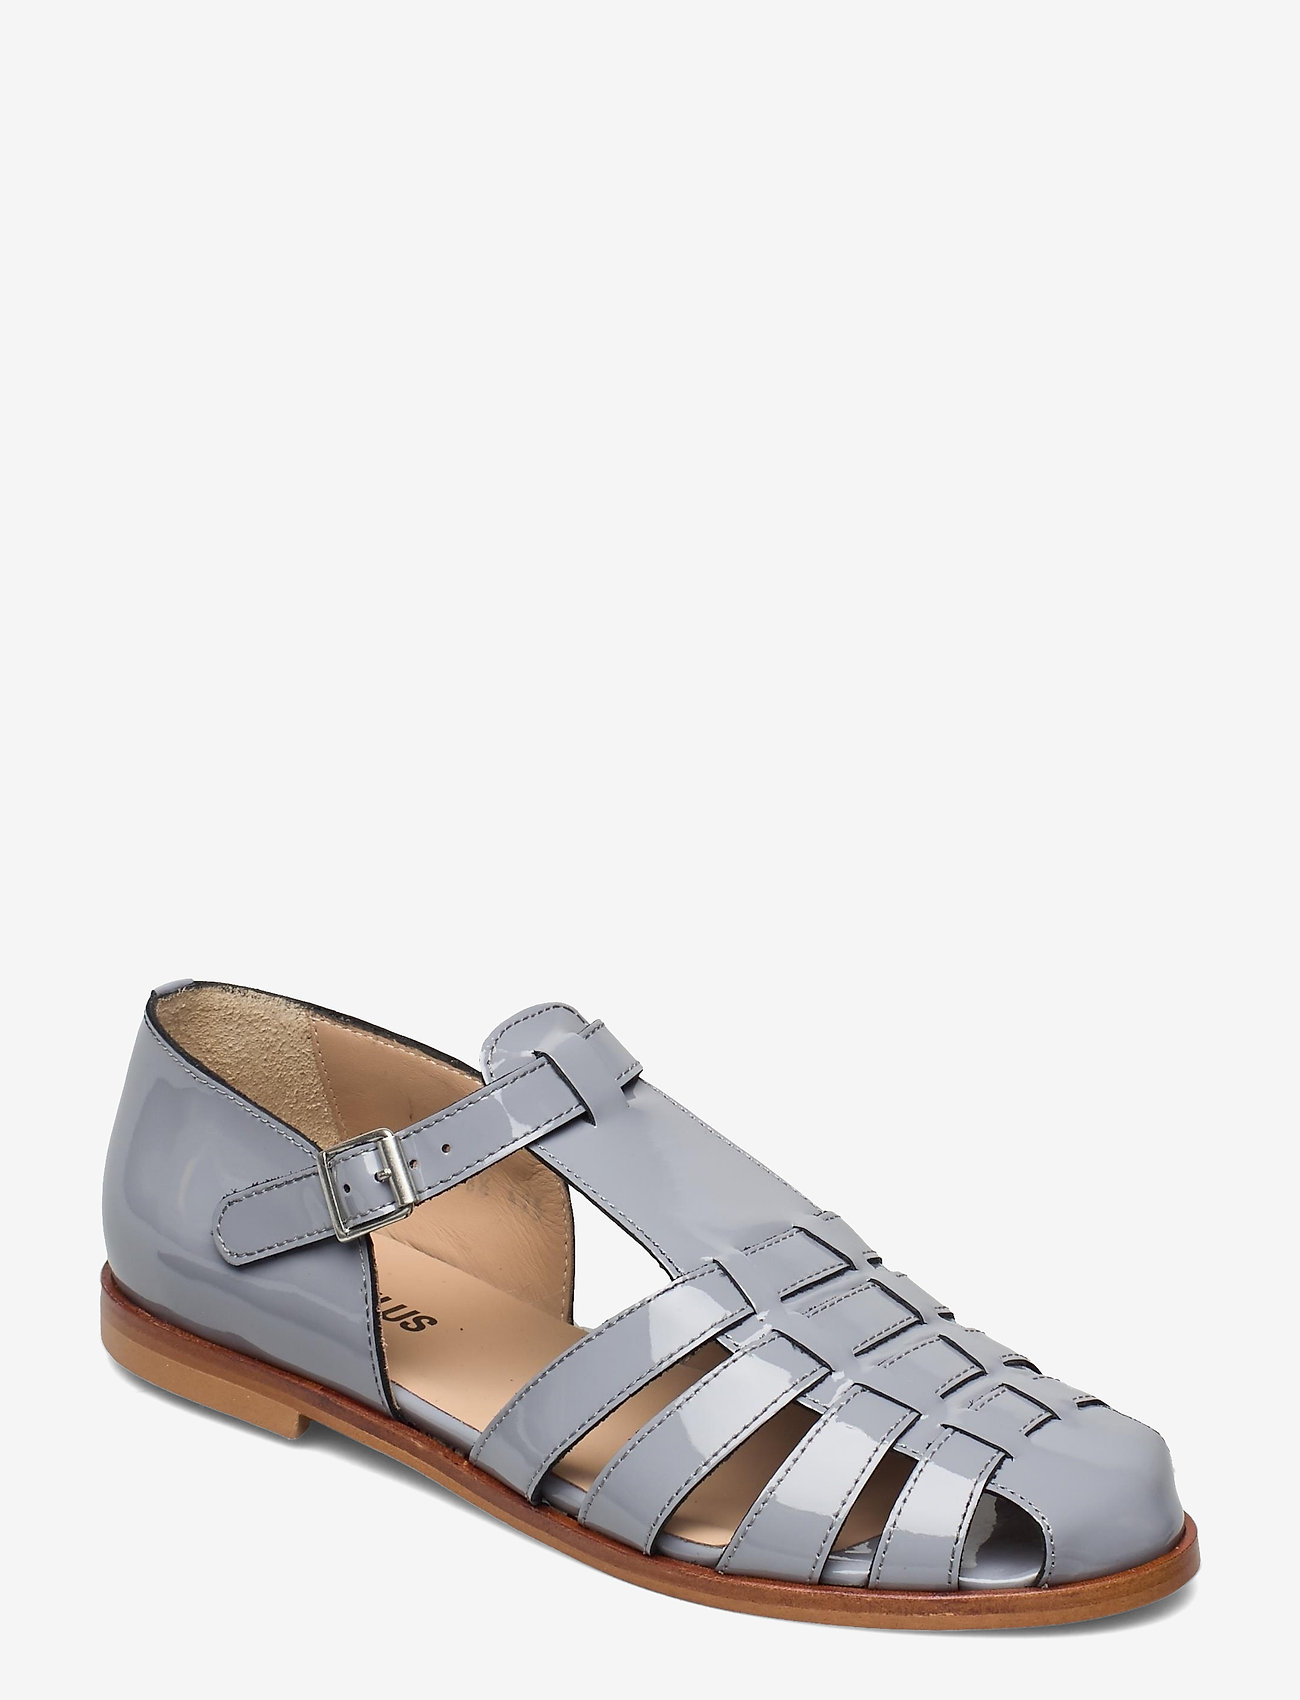 ANGULUS - Sandals - flat - closed toe - op - flache sandalen - 2350 greyblue - 0